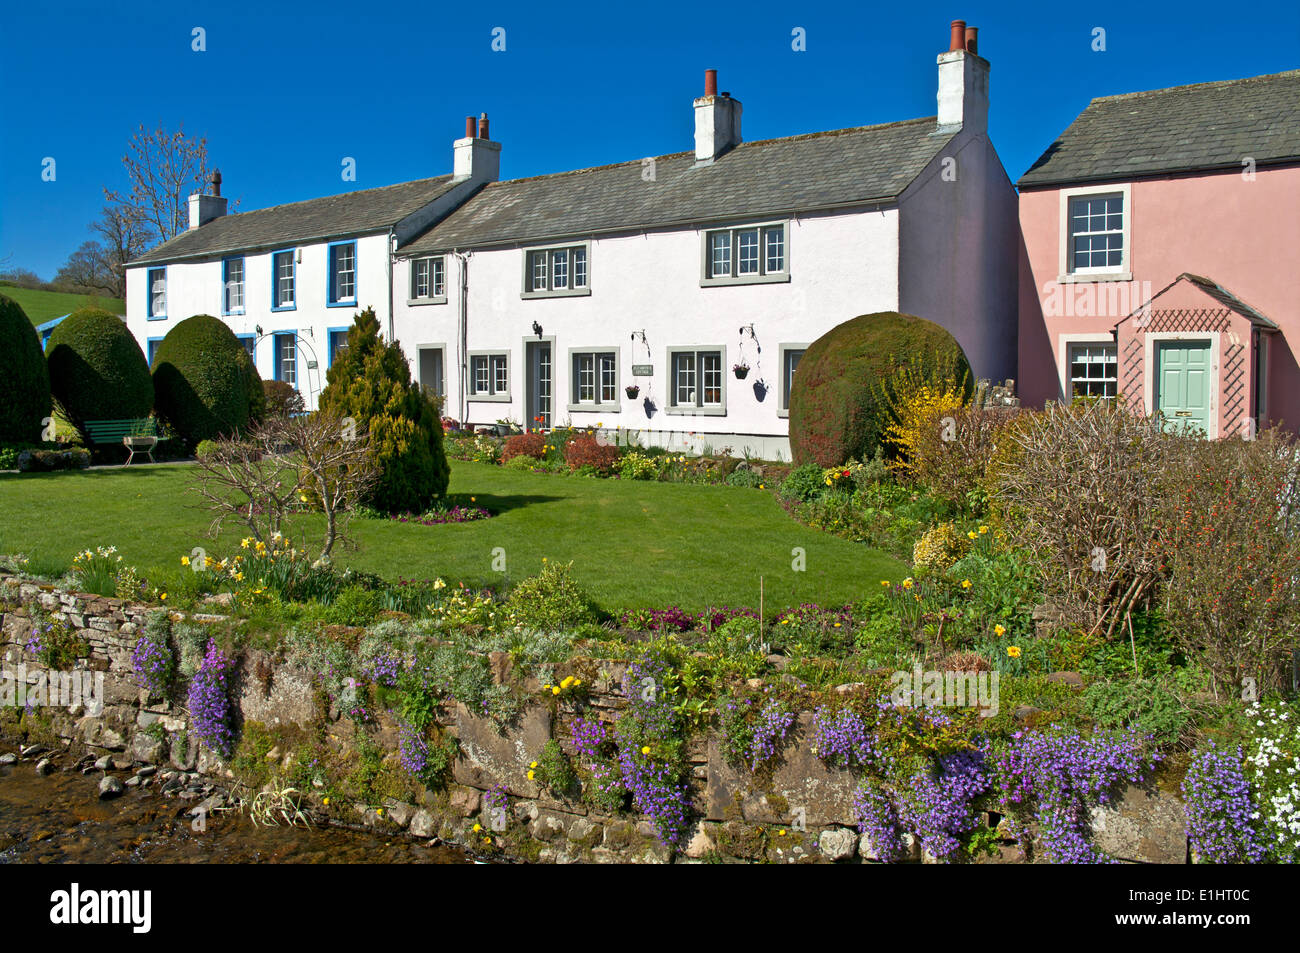 Traditional old painted cottages with pretty gardens in the village of Caldbeck, Cumbria, Lake District National Park England Uk - Stock Image